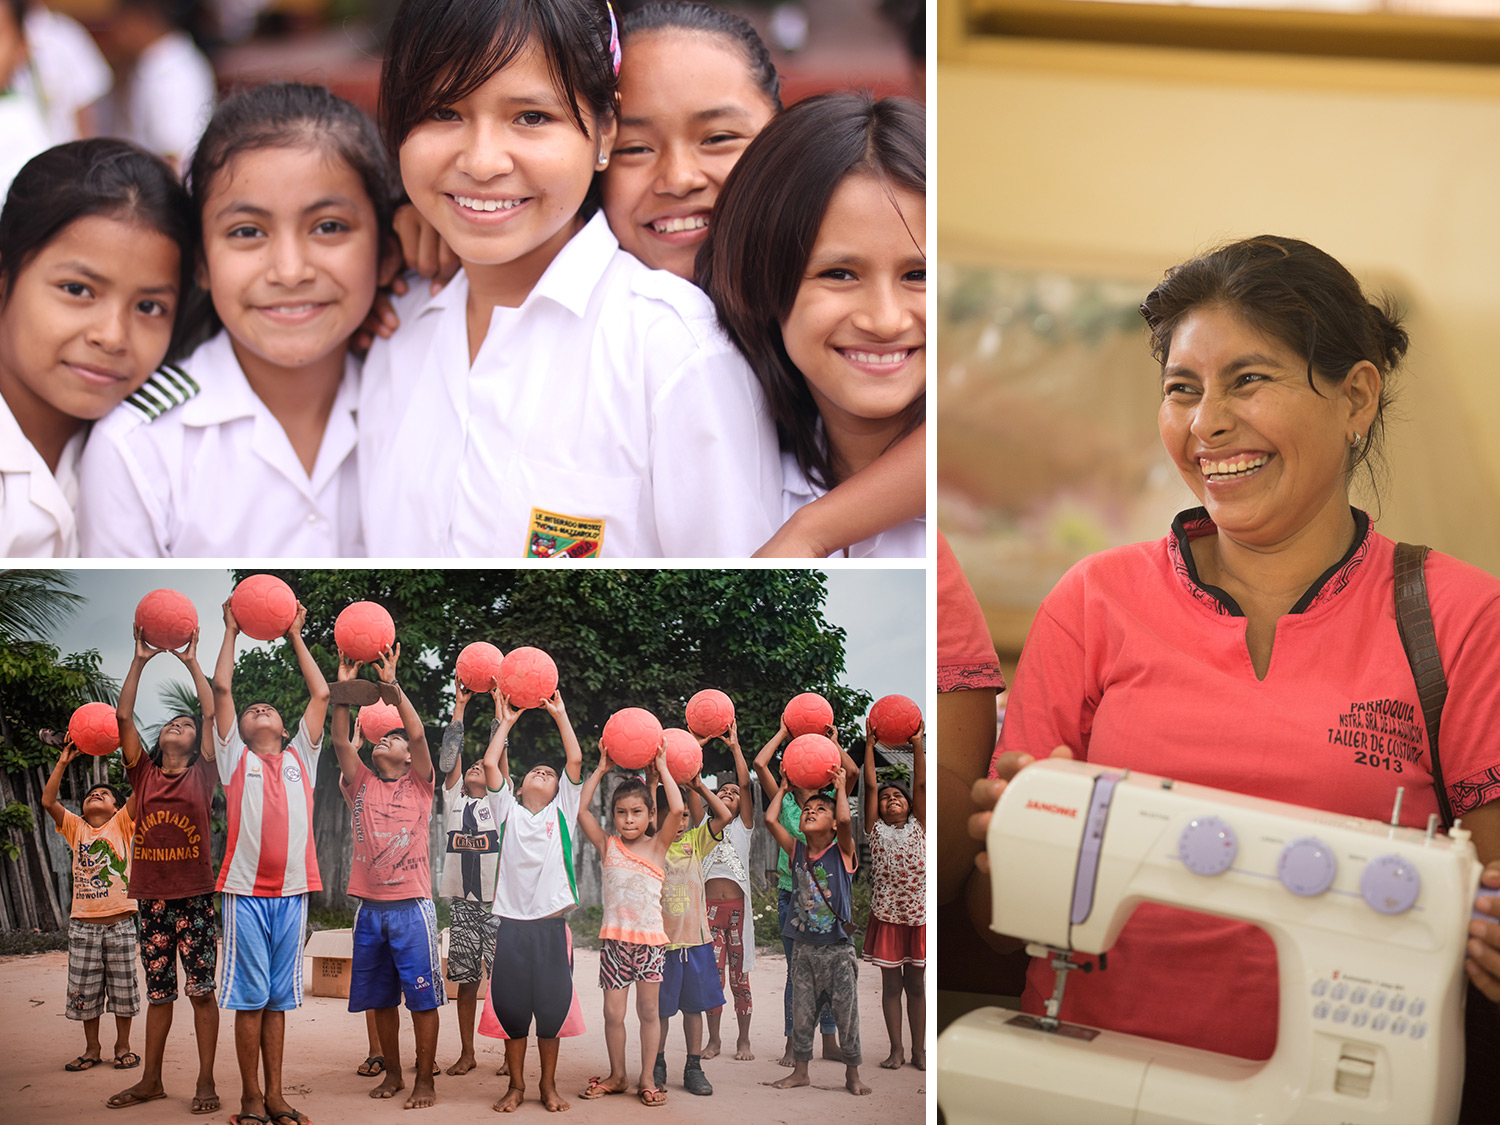 Thank you to our donors. Soctiabank RISE program. Sustinable development and women empowerment in Peru.